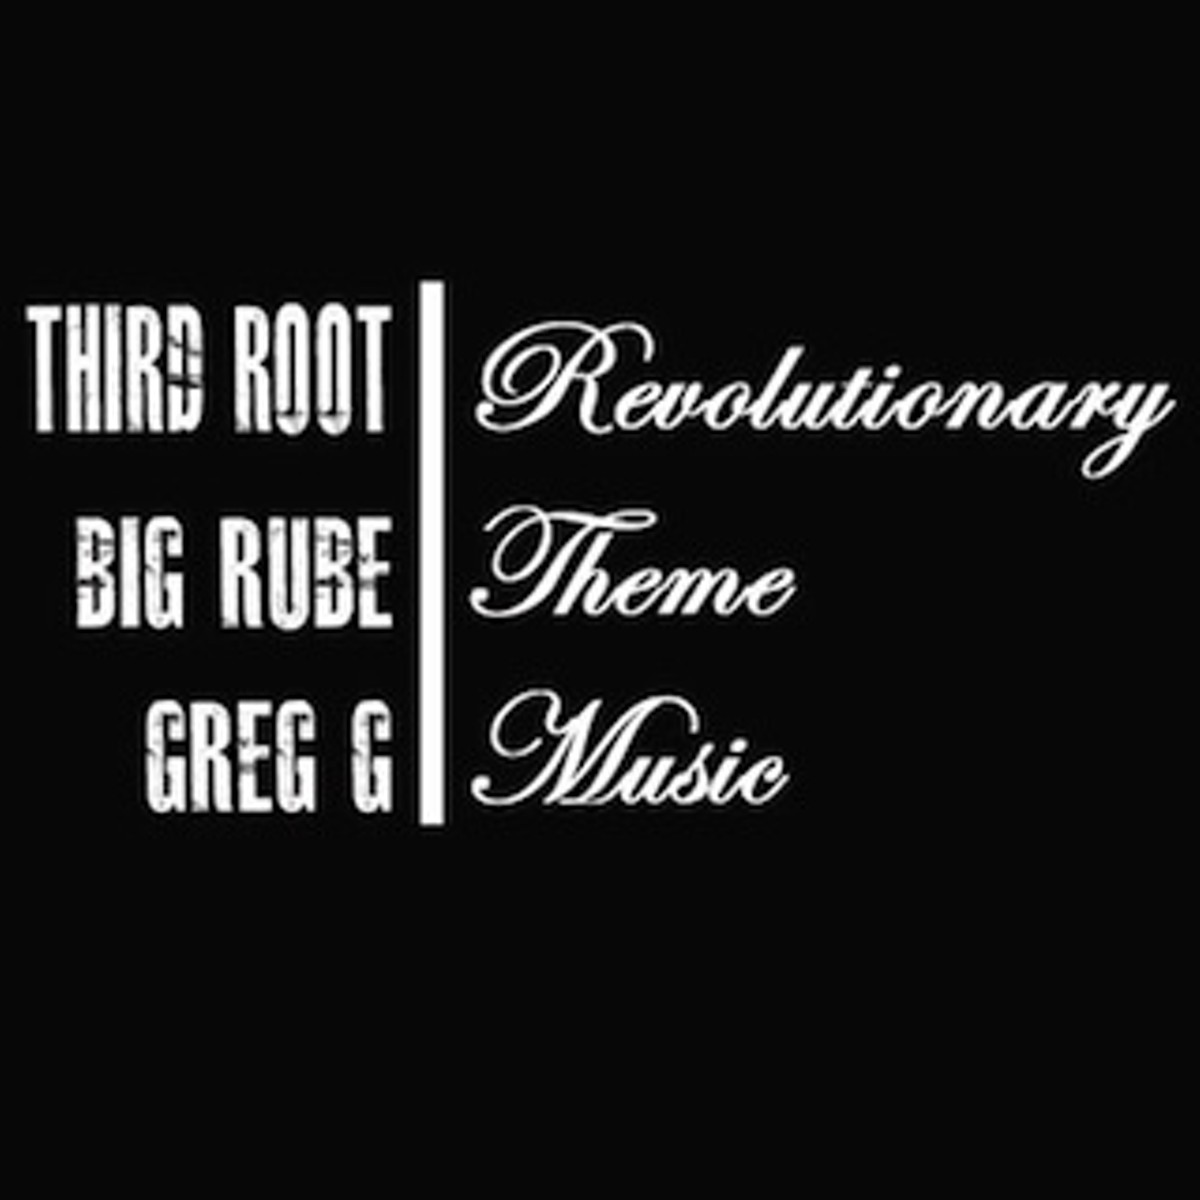 Third Root Release Revolutionary Theme Music Sa Sound